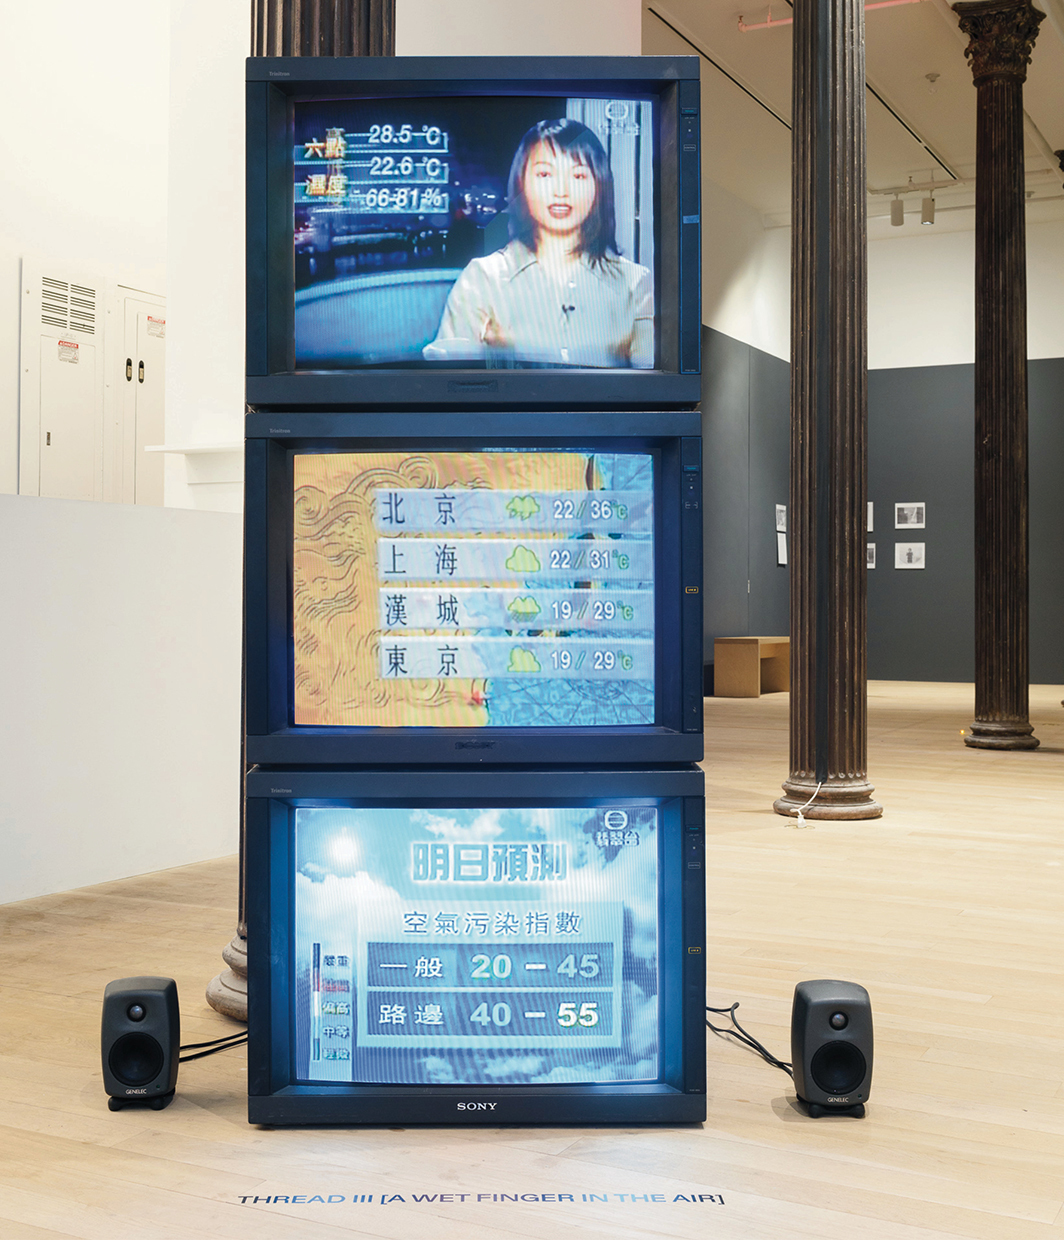 Tiffany Sia, A Wet Finger in the Air, 2021, three-channel video (color, sound, infinite duration), monitors. Installation view, Artists Space, New York. Photo: Filip Wolak.